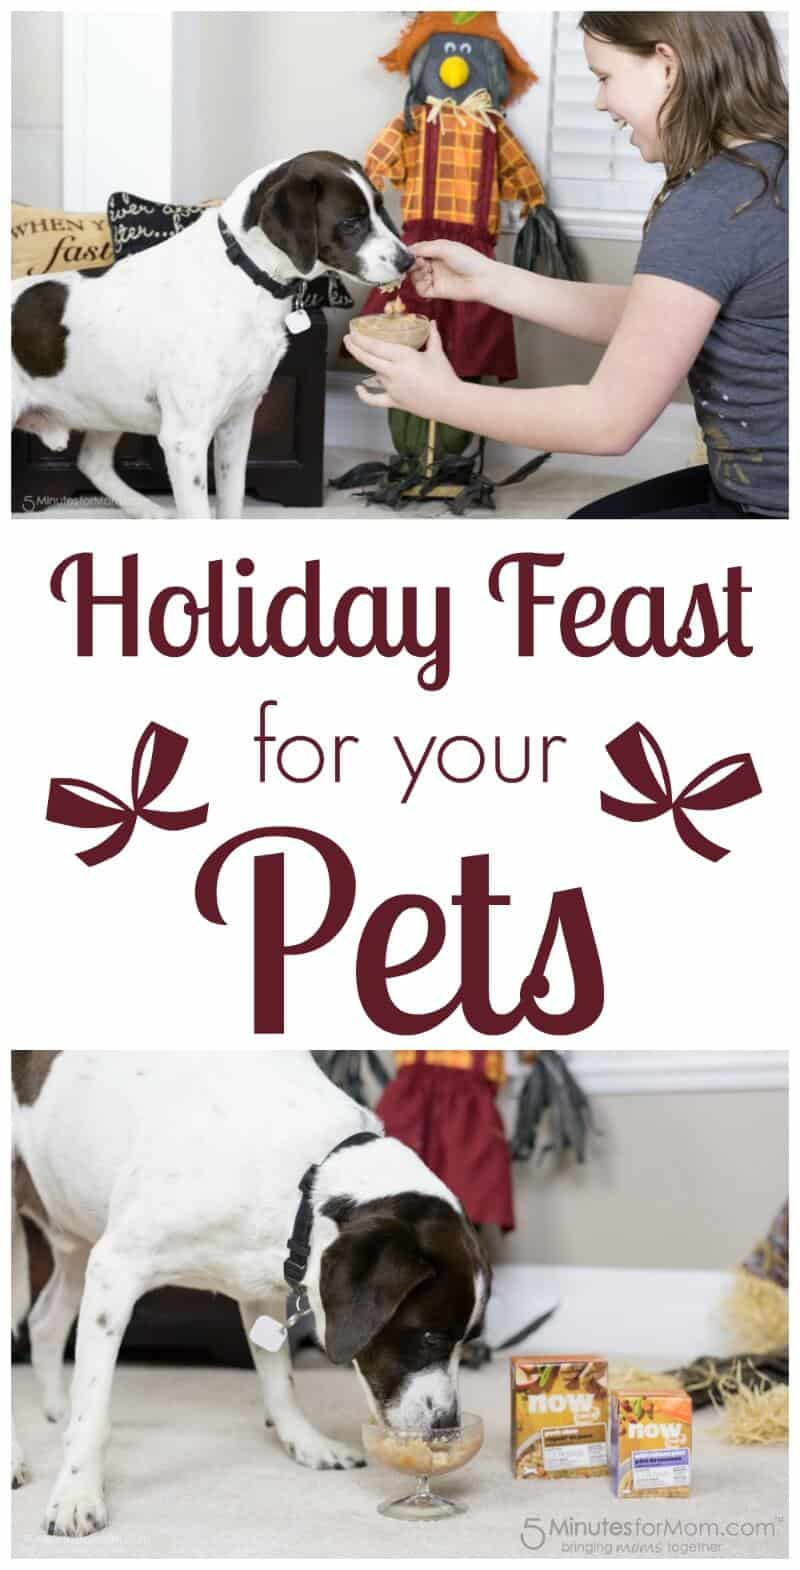 Holiday Feast for your Pets